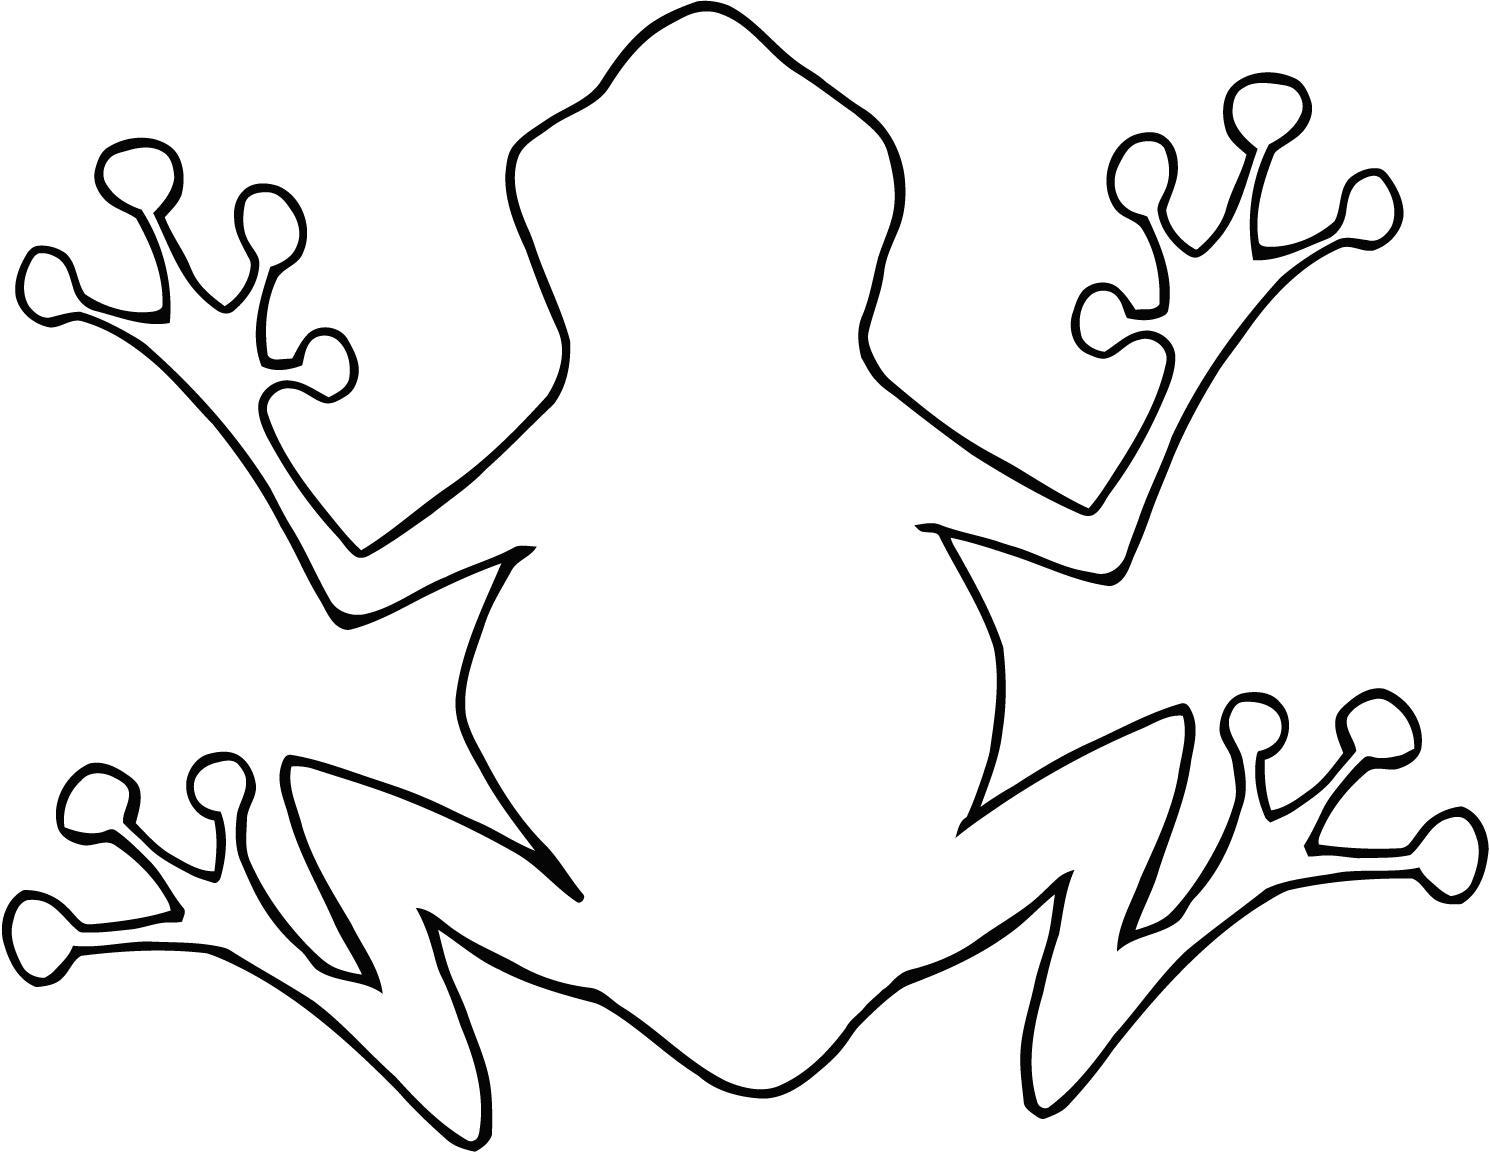 1490x1152 animal outlines templates Just Colorings